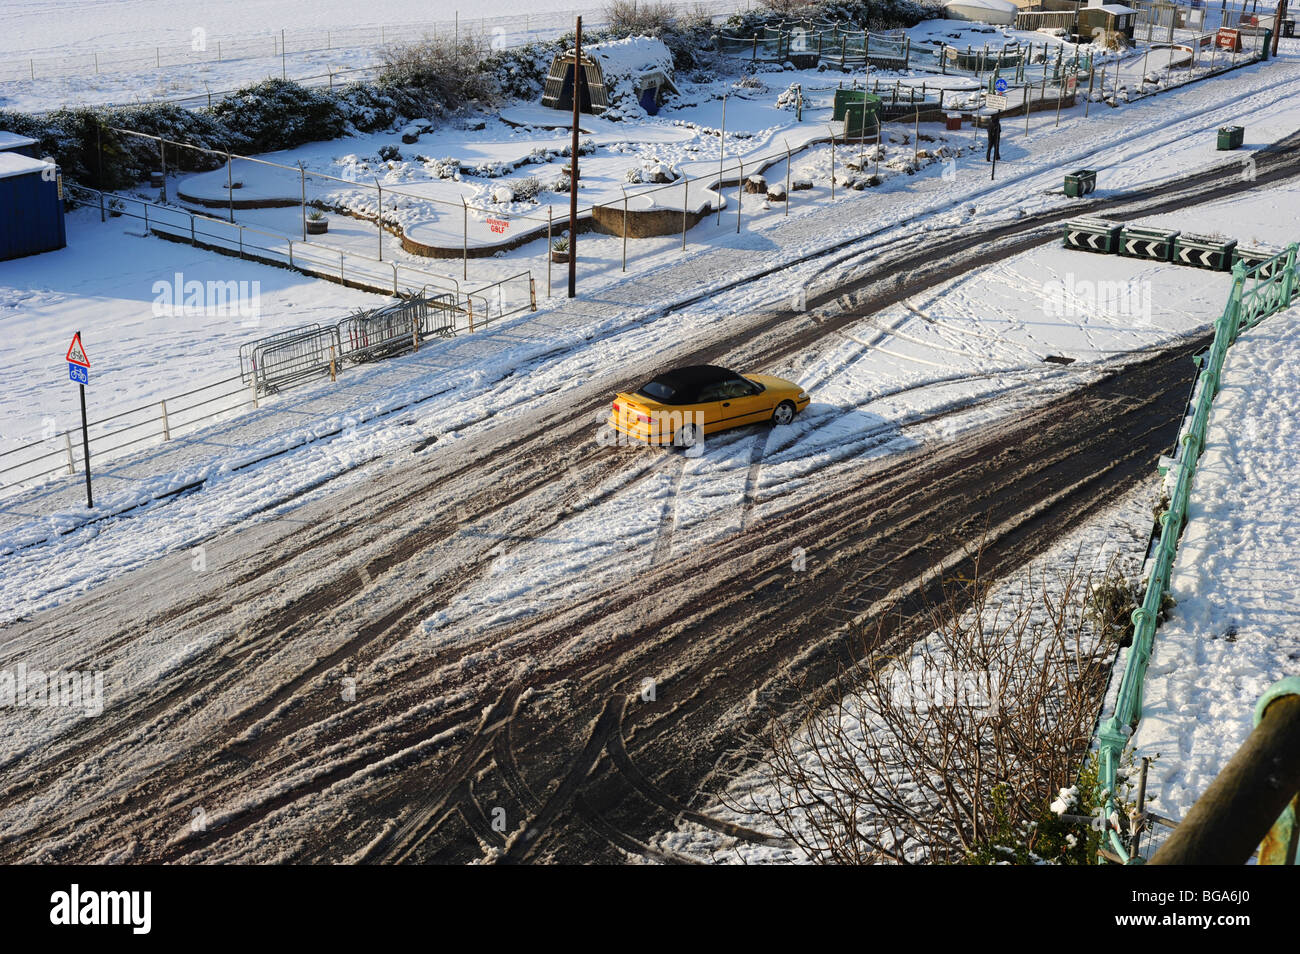 A car skids on maderia drive in brighton after a heavy fall of snow - Stock Image